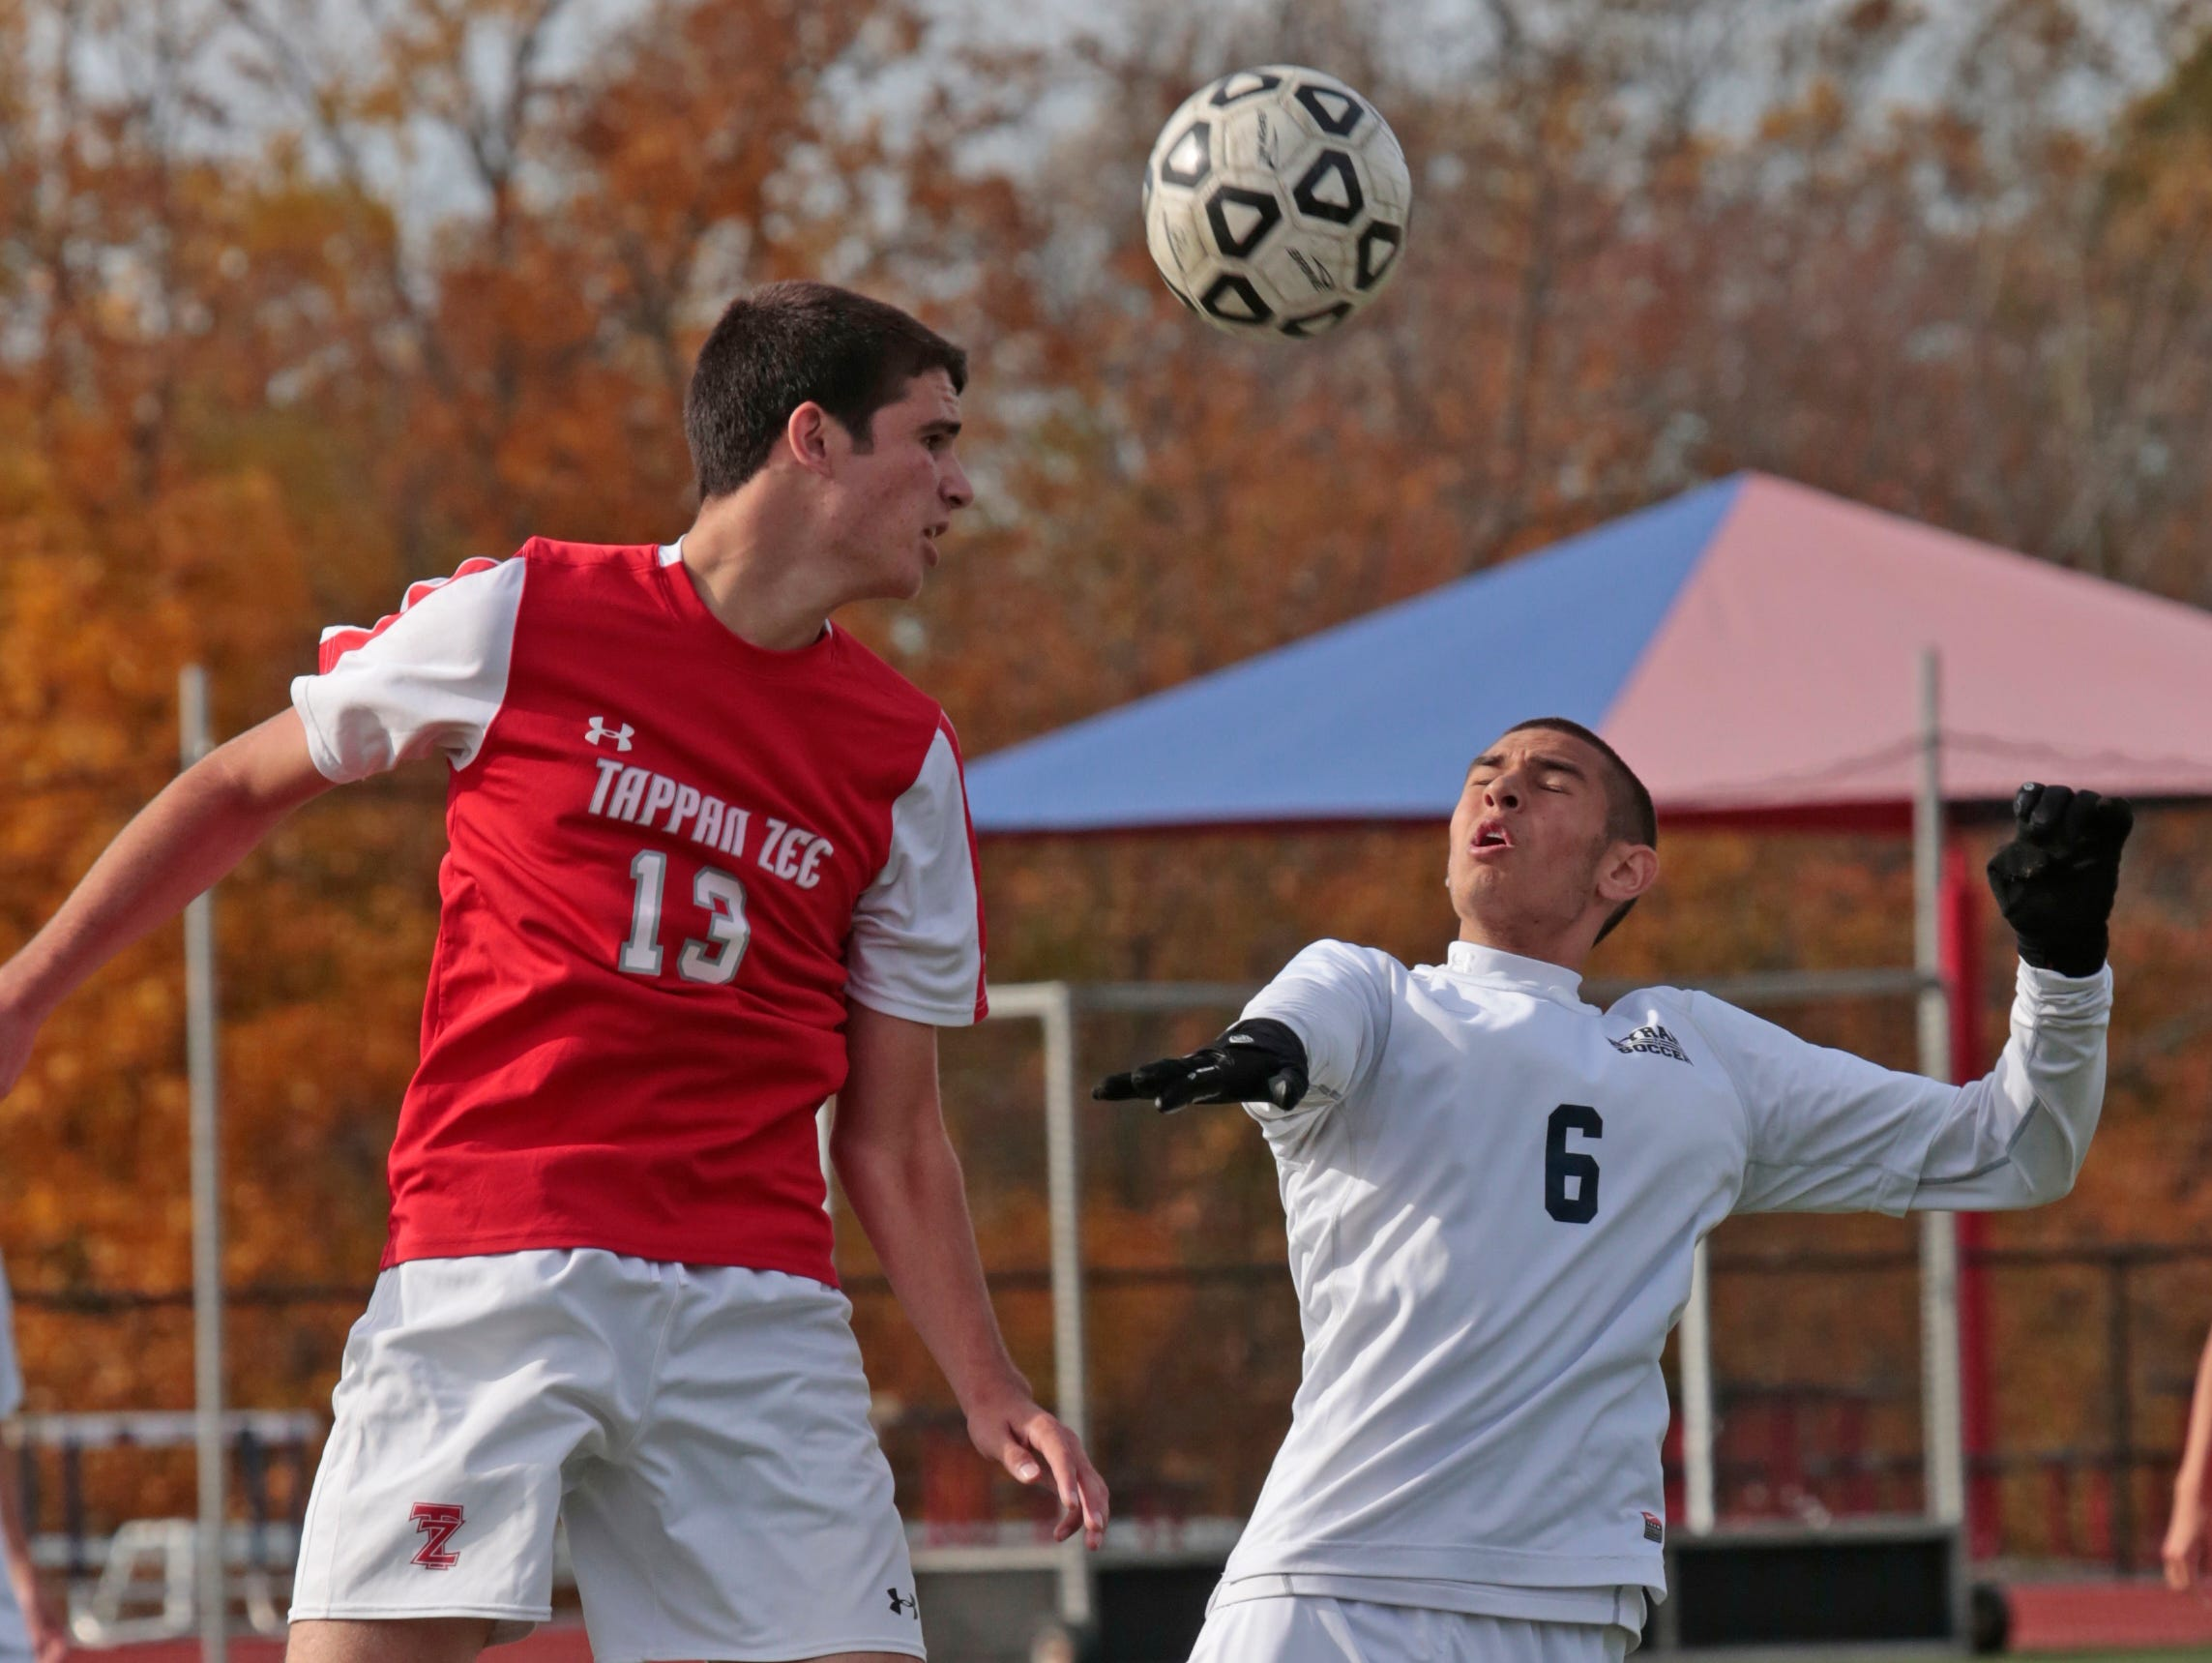 Tappan Zee's Chris Mulqueen (13) and Byrum Hills' Indra Neil Dan (6) battle for control of the ball during the game at Byrum Hills High School in Armonk on Oct. 29, 2015.